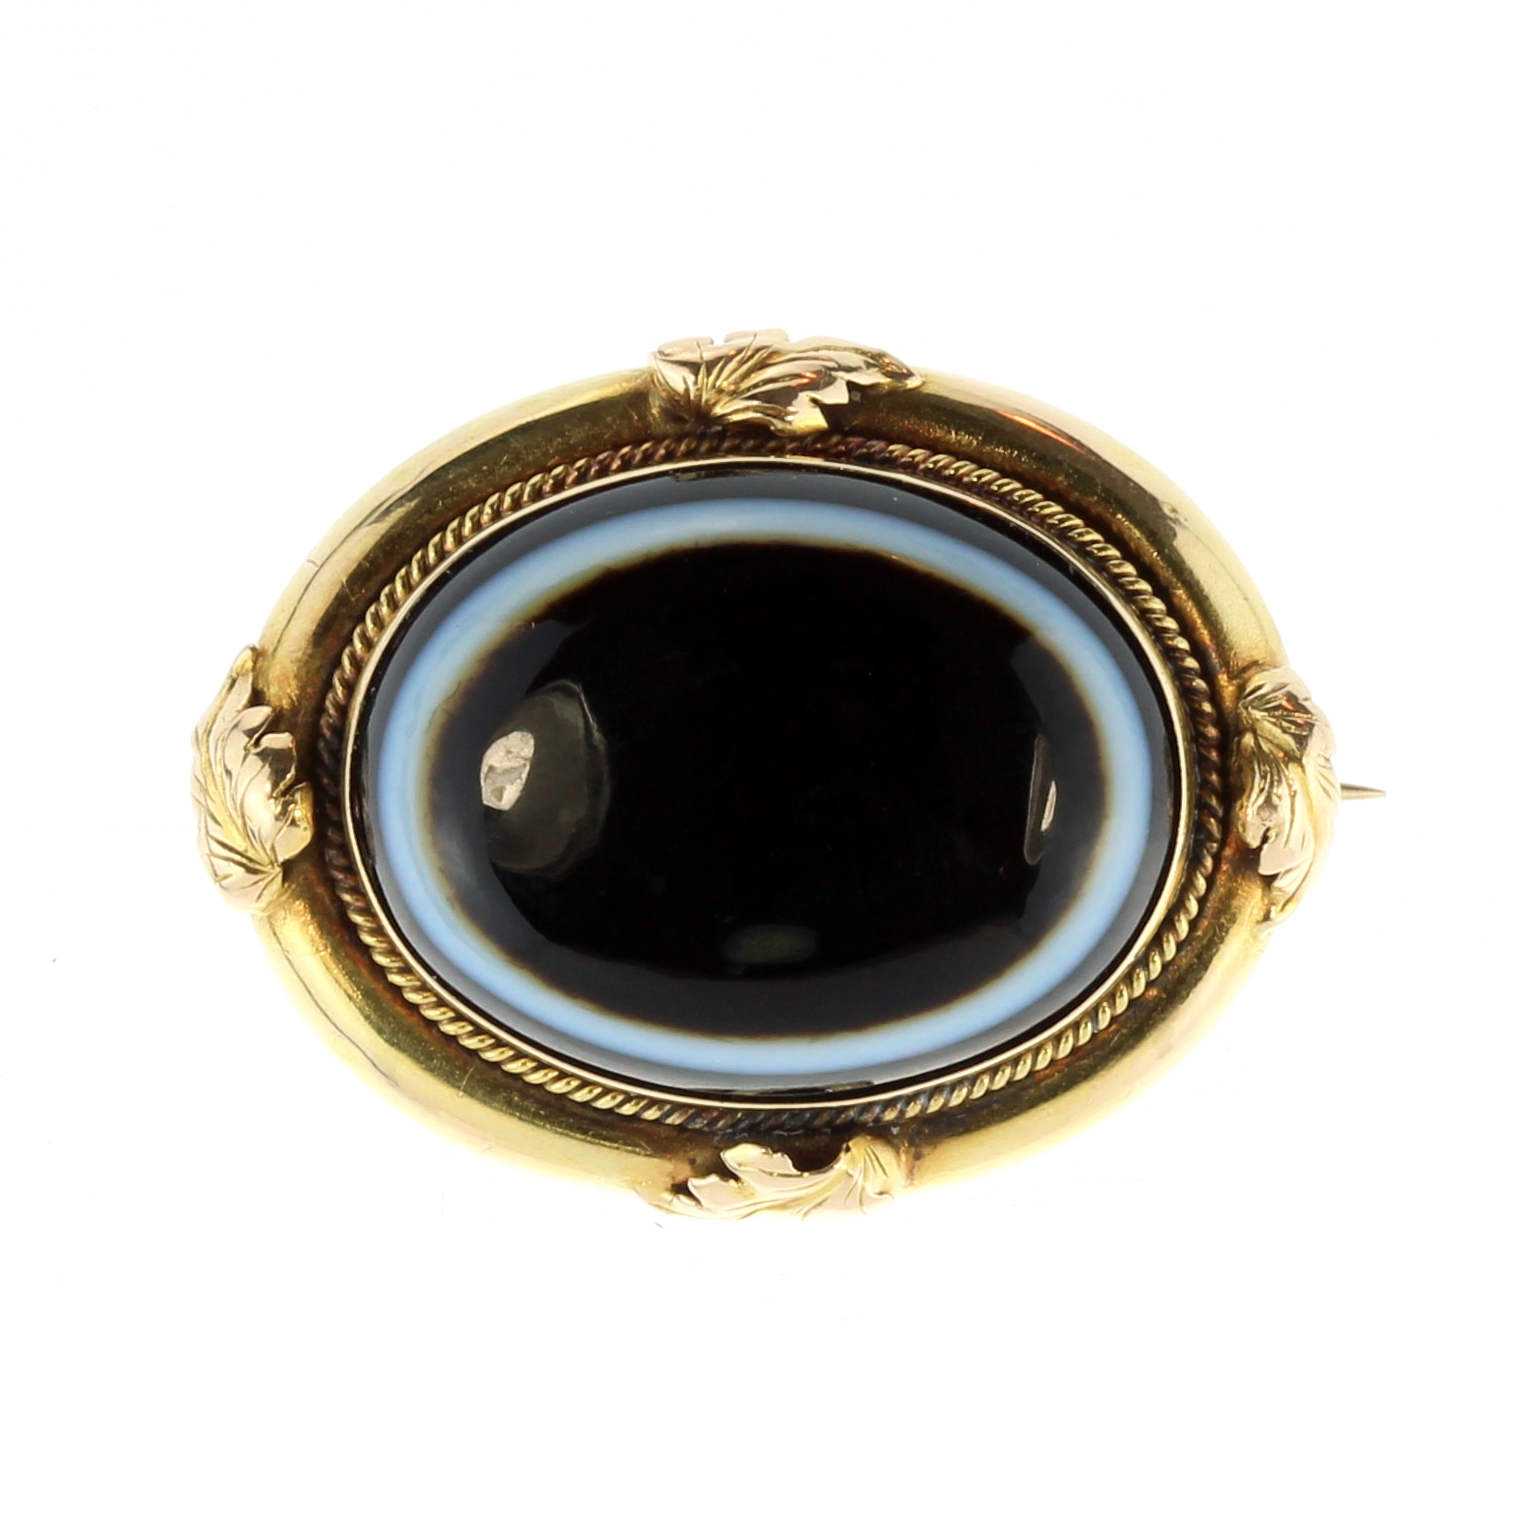 Los 59 - An antique Victorian banded agate mourning brooch the large cabochon measuring 25x19mm, surrounded